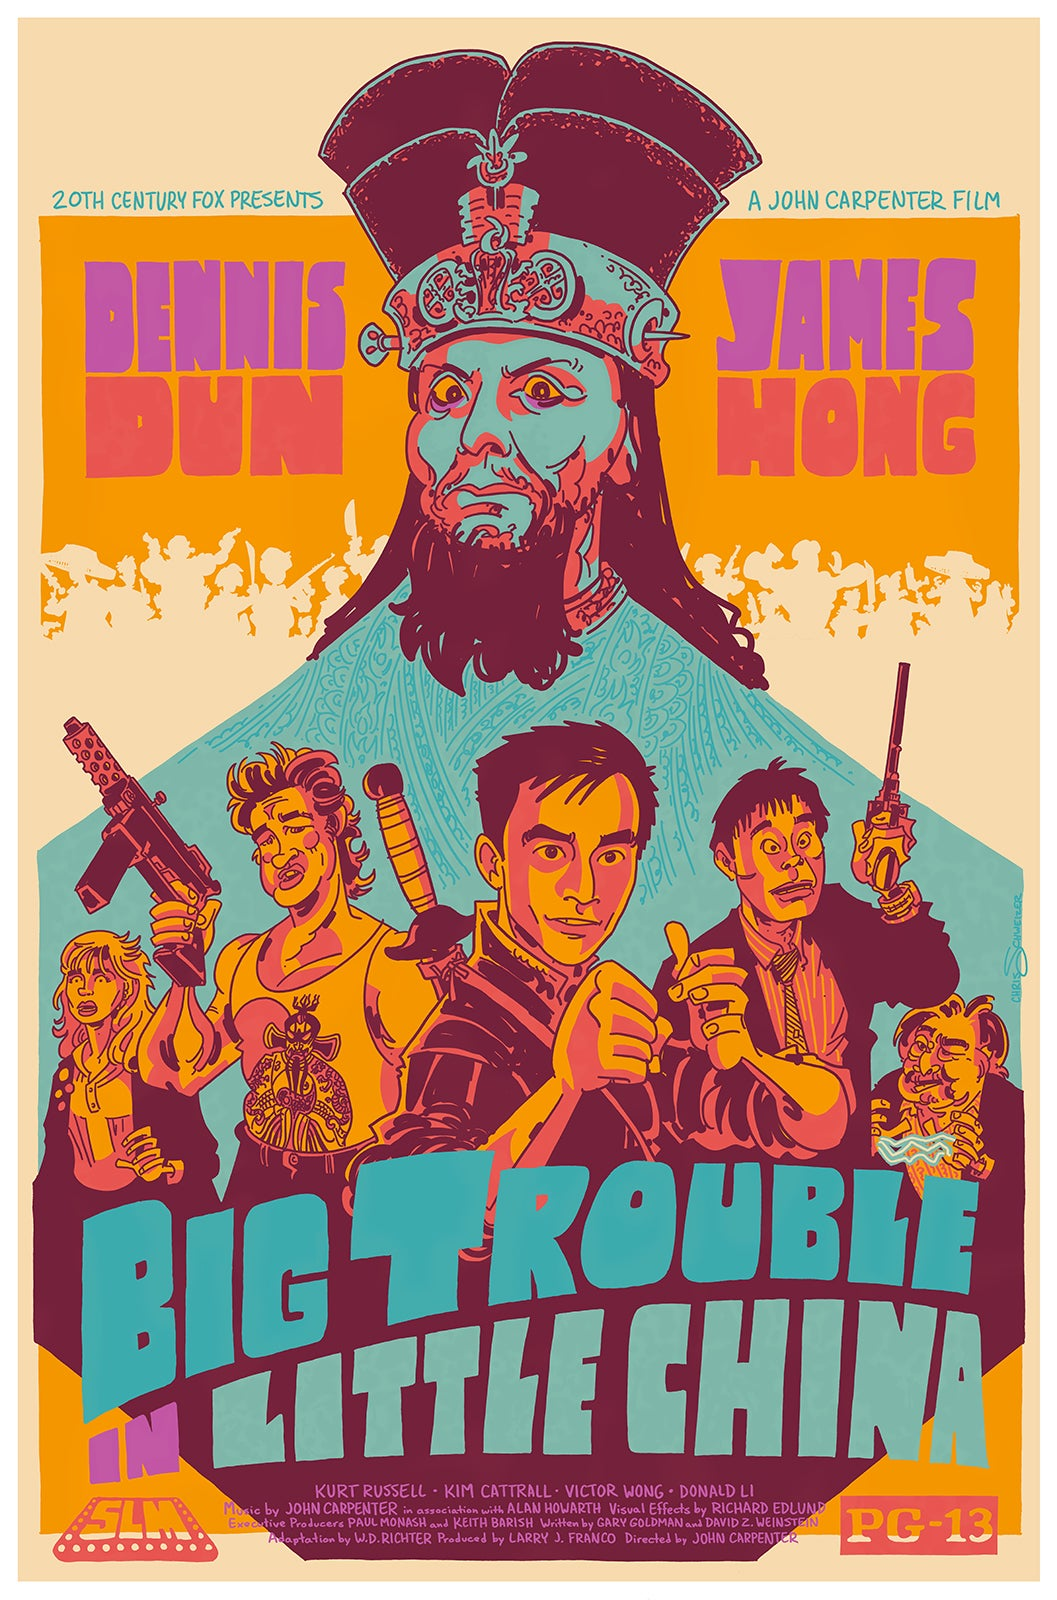 Big trouble in little china mondo poster